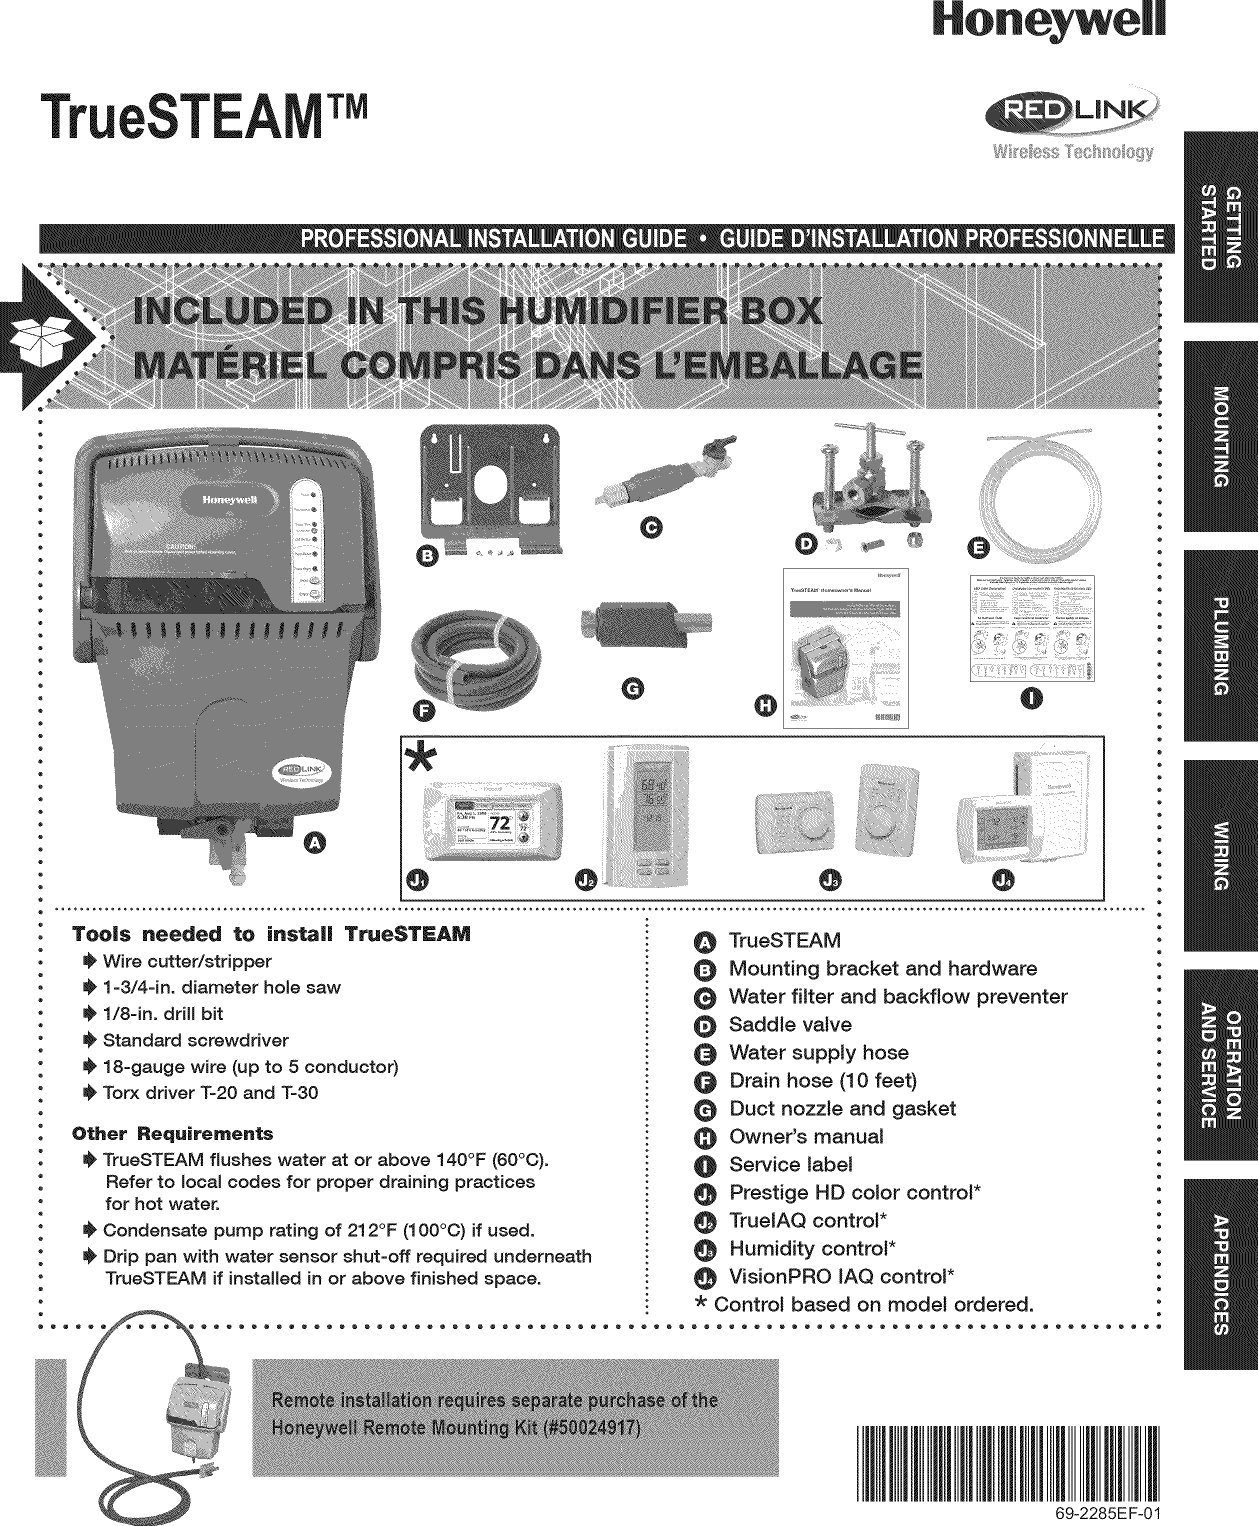 Honeywell Hm509a Wiring Diagram Free Download Humidifier Manual L1002585 Zone Valve At